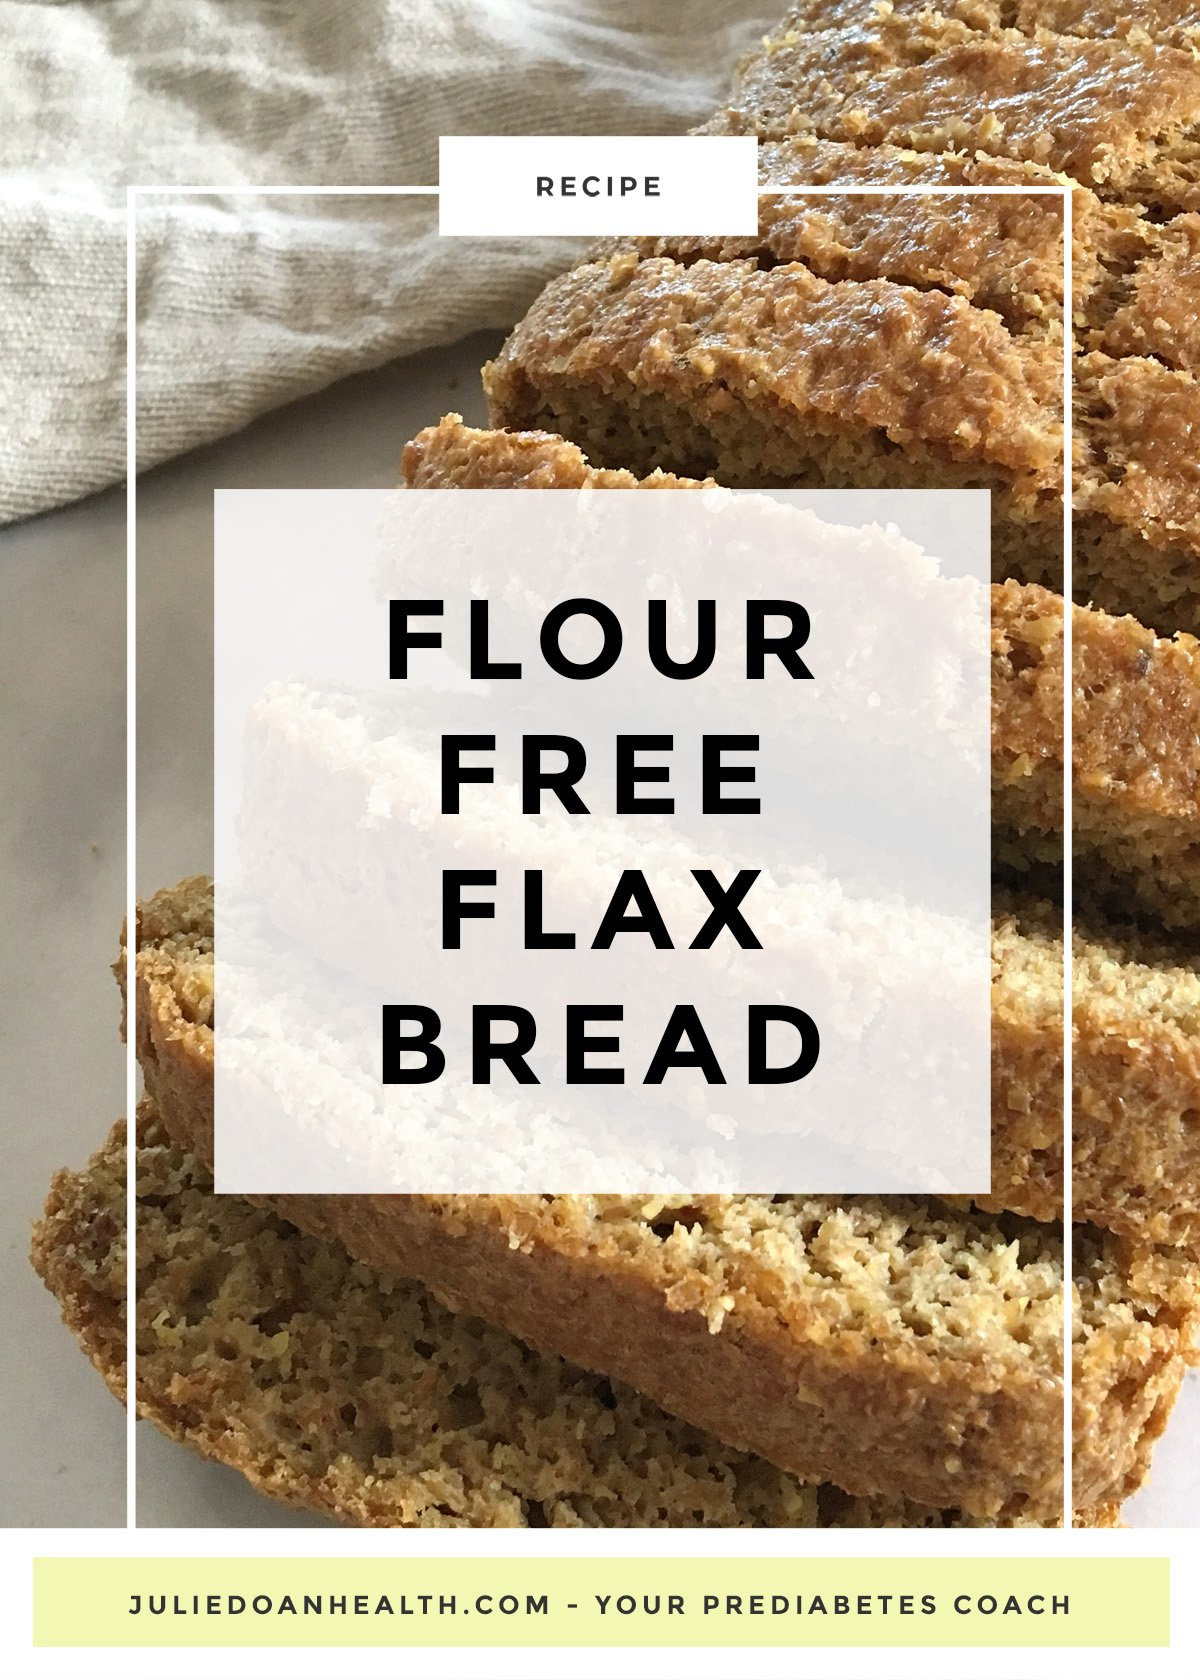 A delicious low-carb and flour-free flax seed bread recipe that